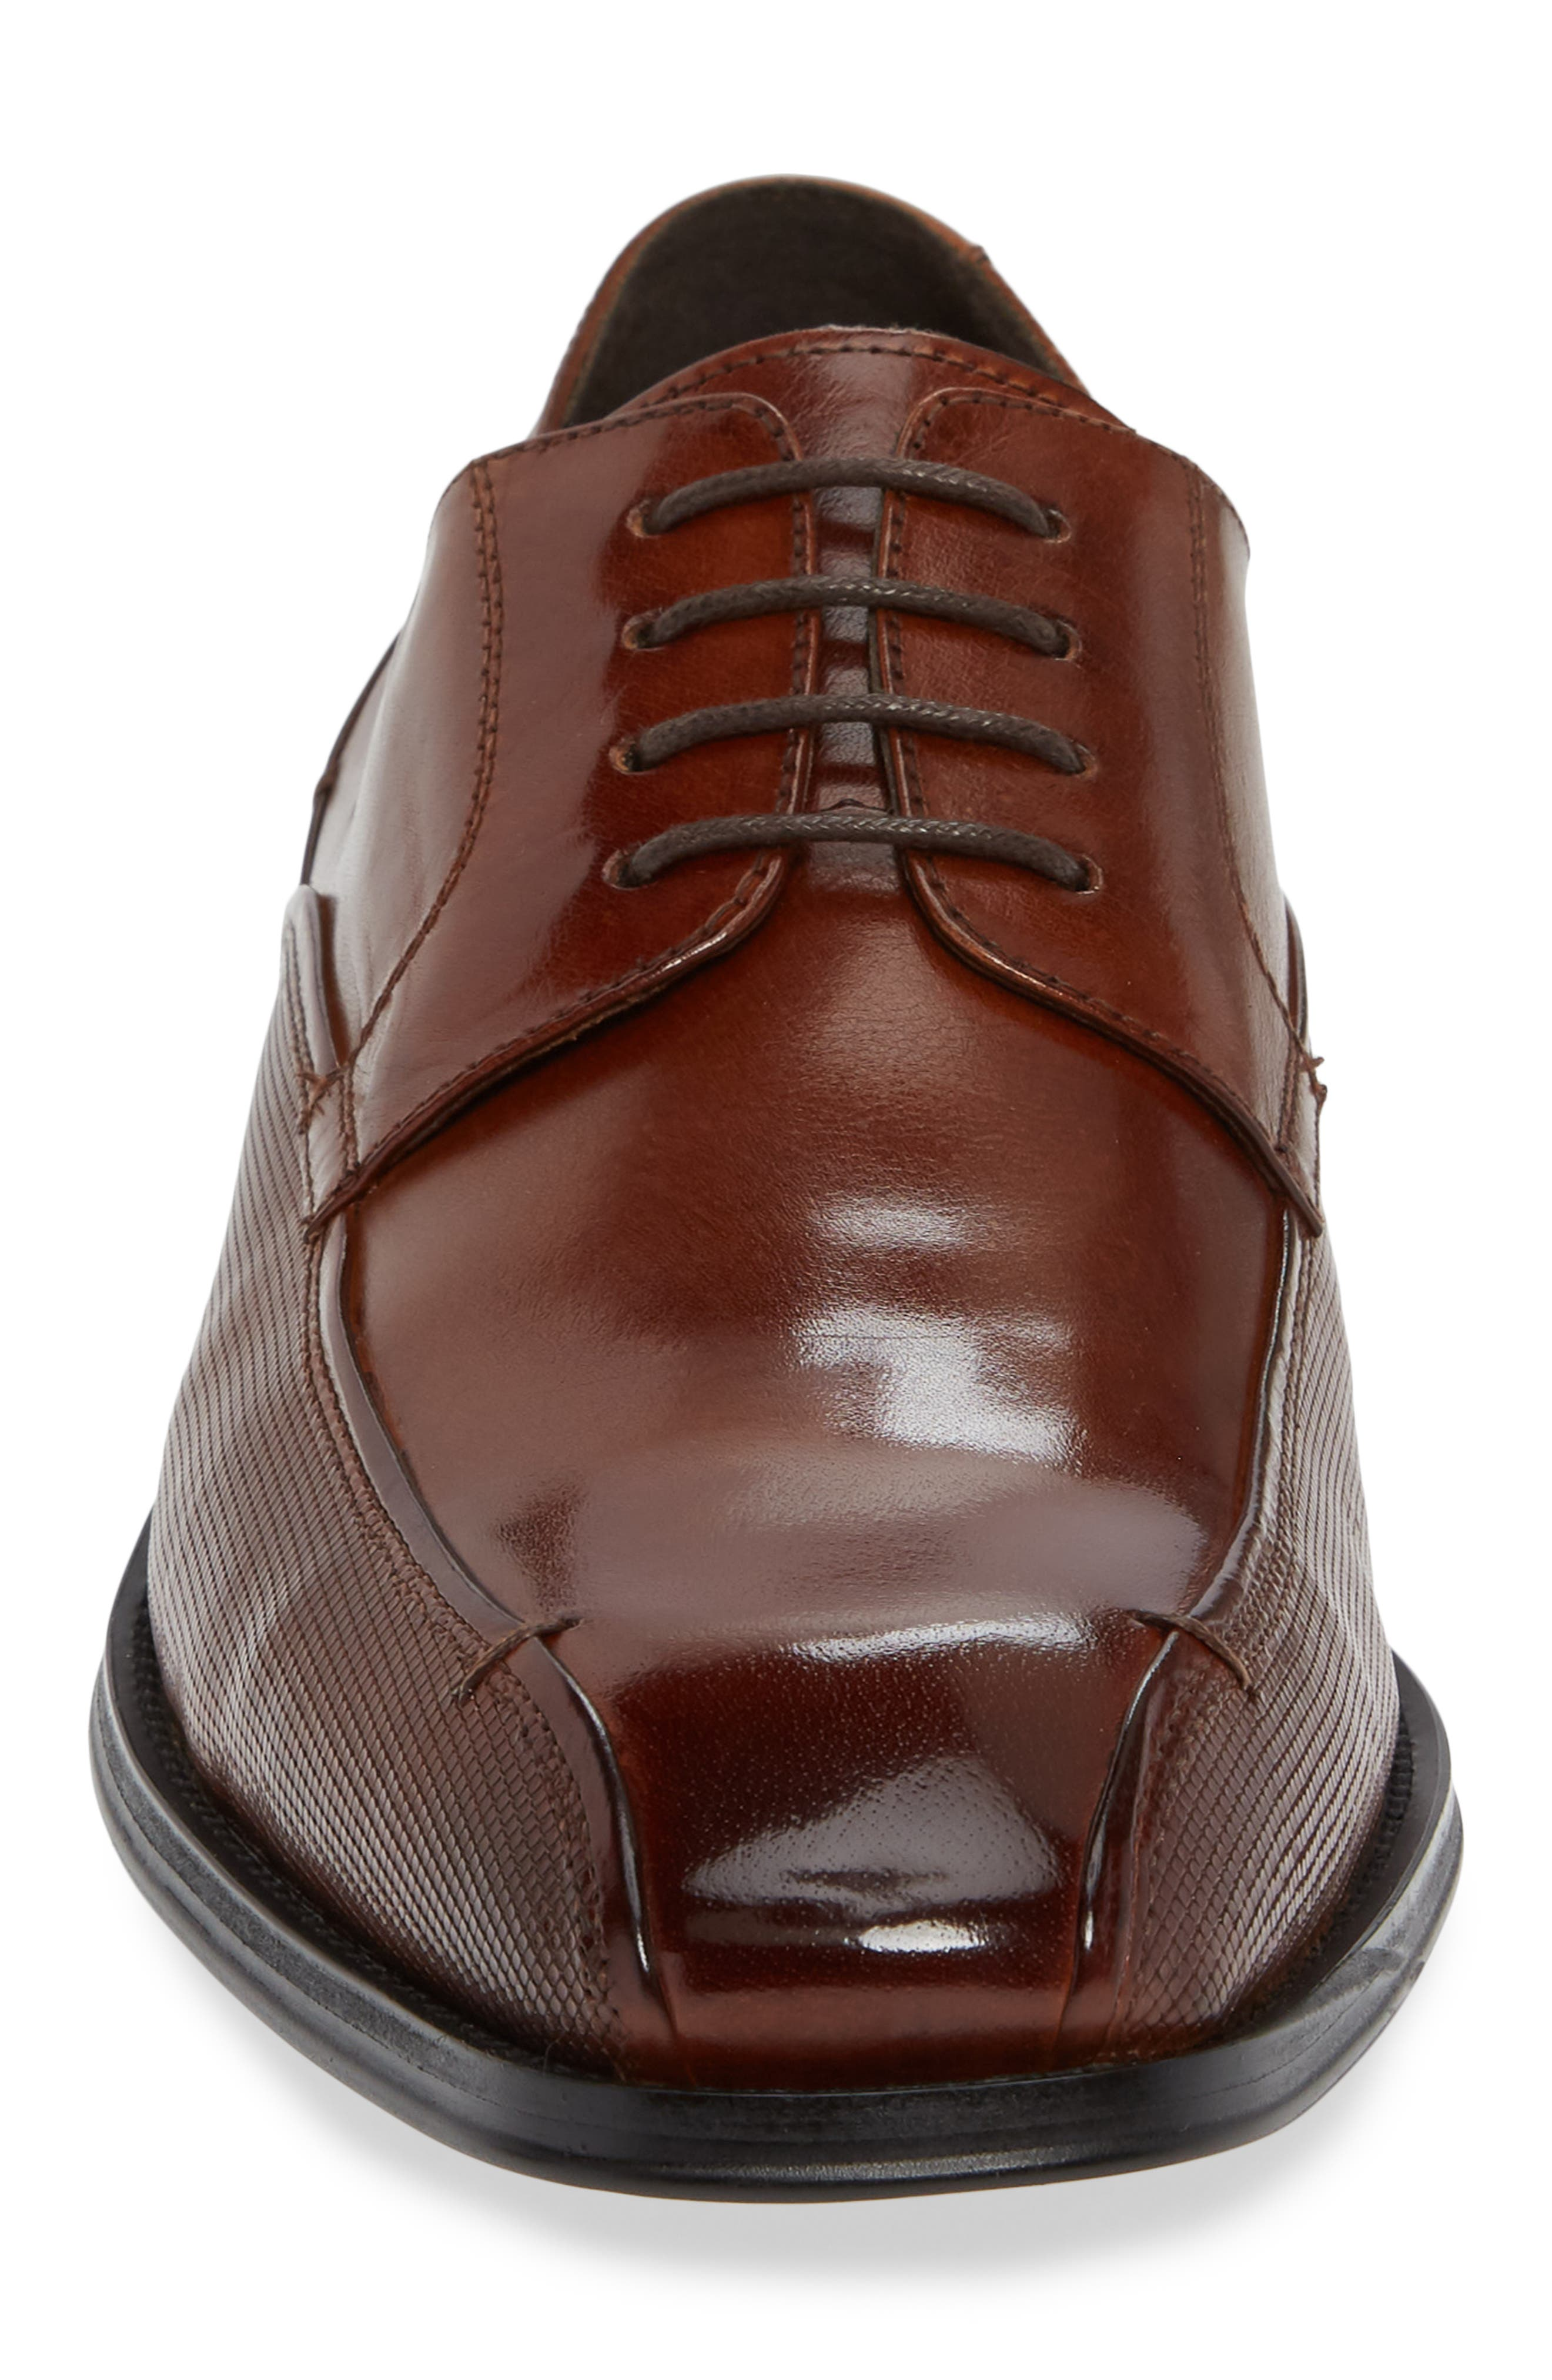 REACTION KENNETH COLE, Witter Textured Bike Toe Derby, Alternate thumbnail 4, color, COGNAC LEATHER